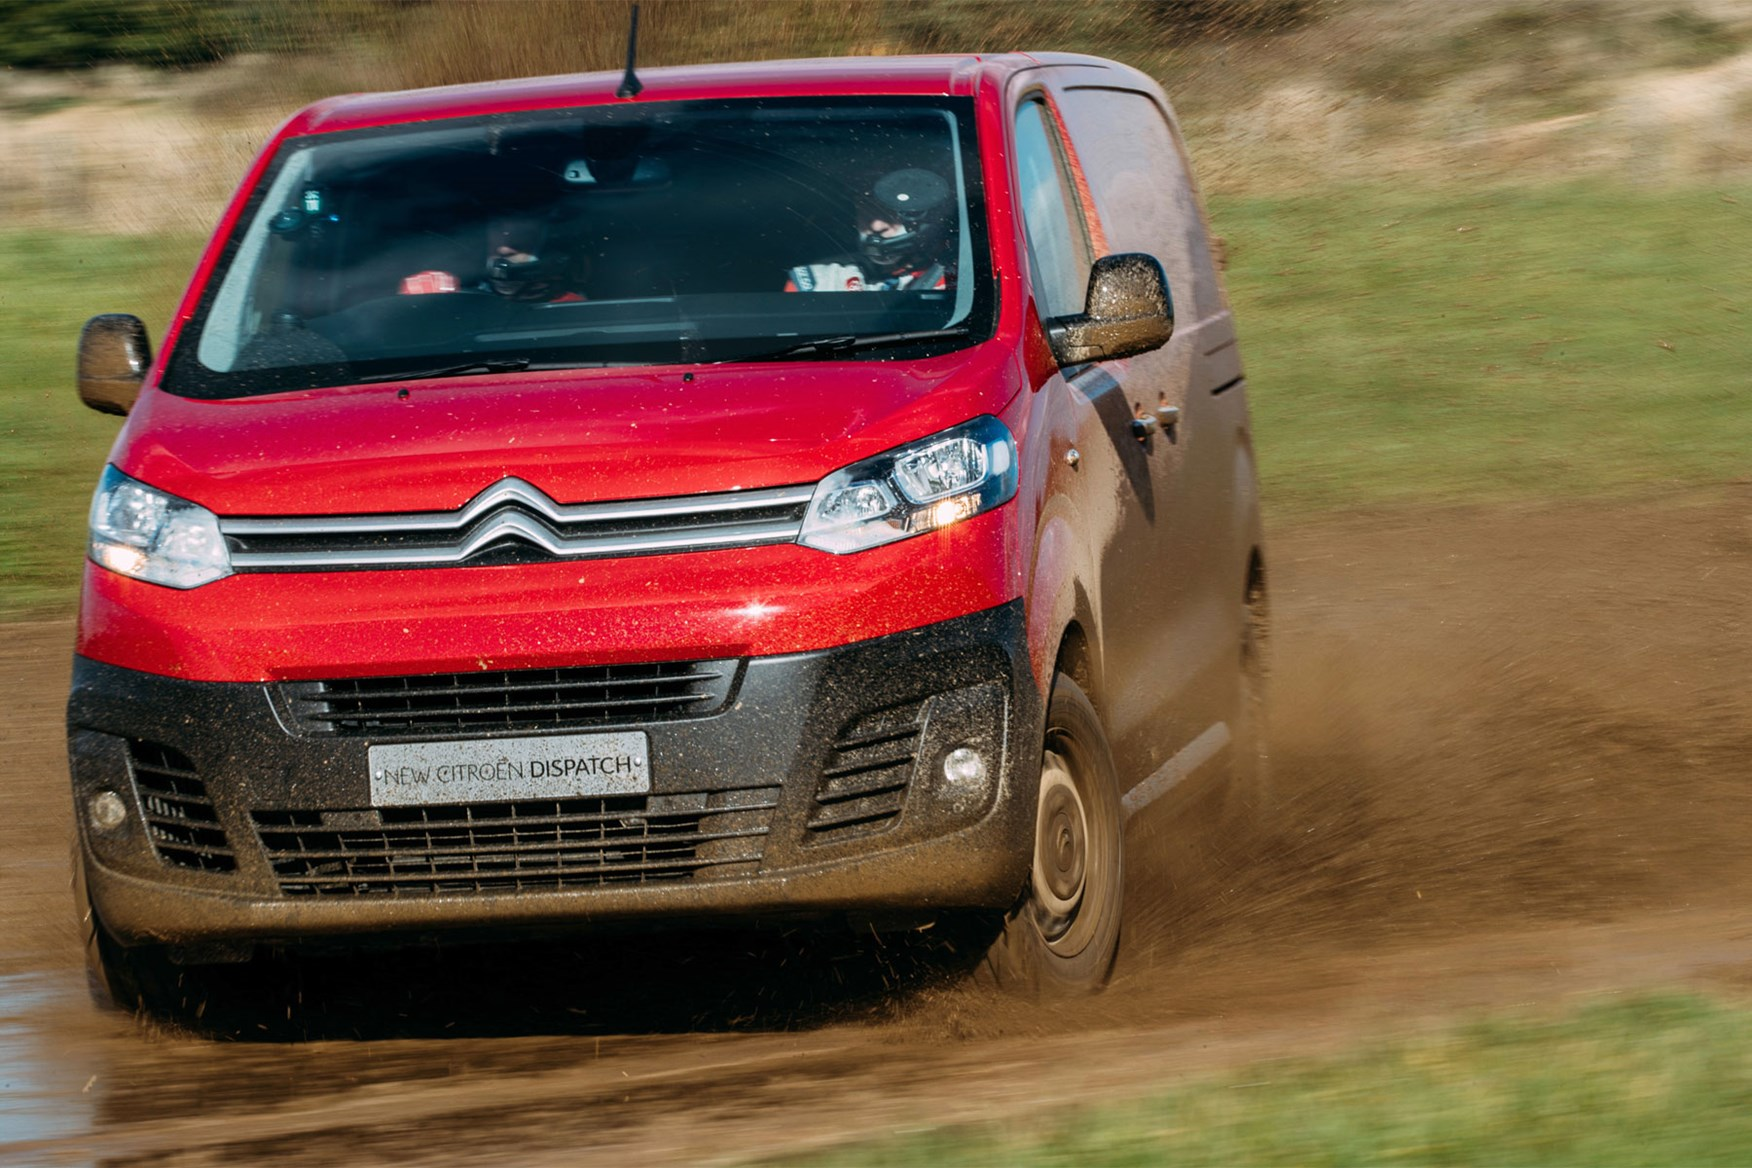 Citroen Dispatch review - front view, red, driving through mud, sideways...